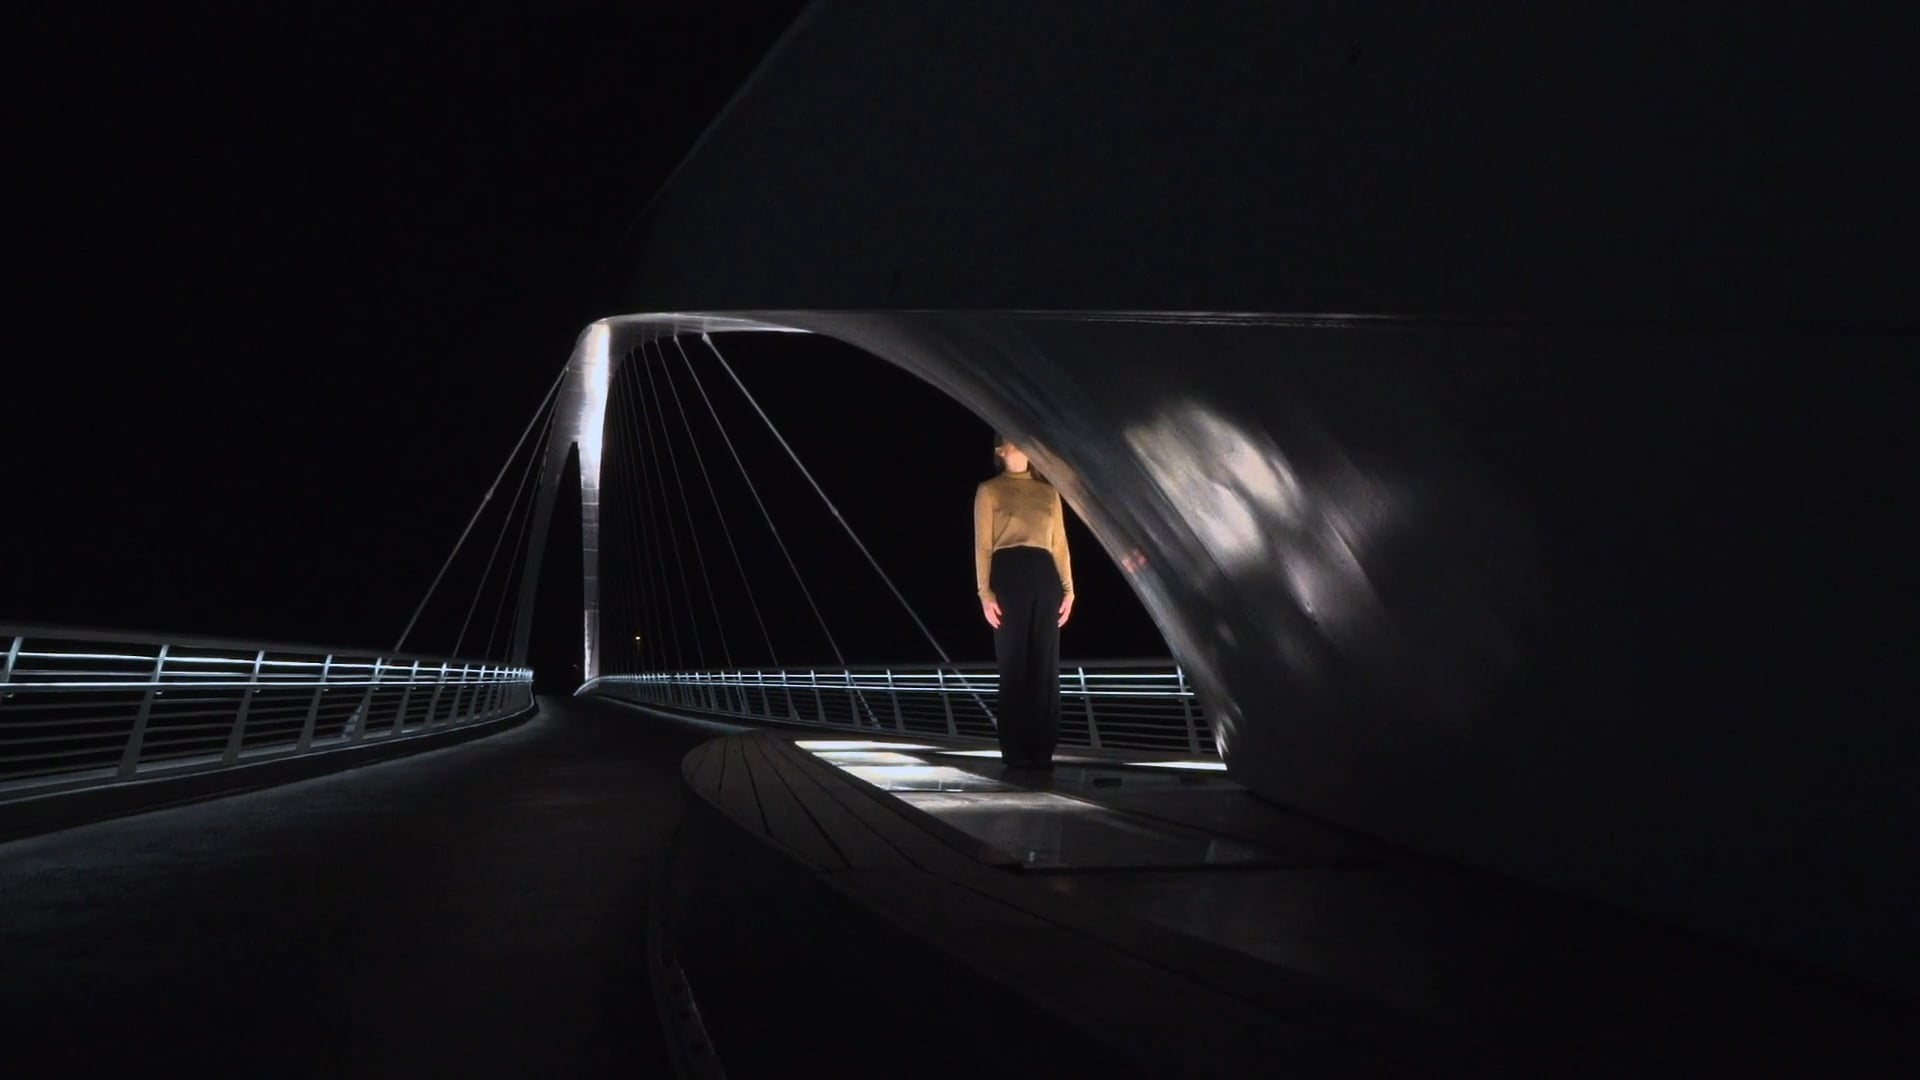 TOUCHED BY NATURE Episode 1 The Bridge - Video art